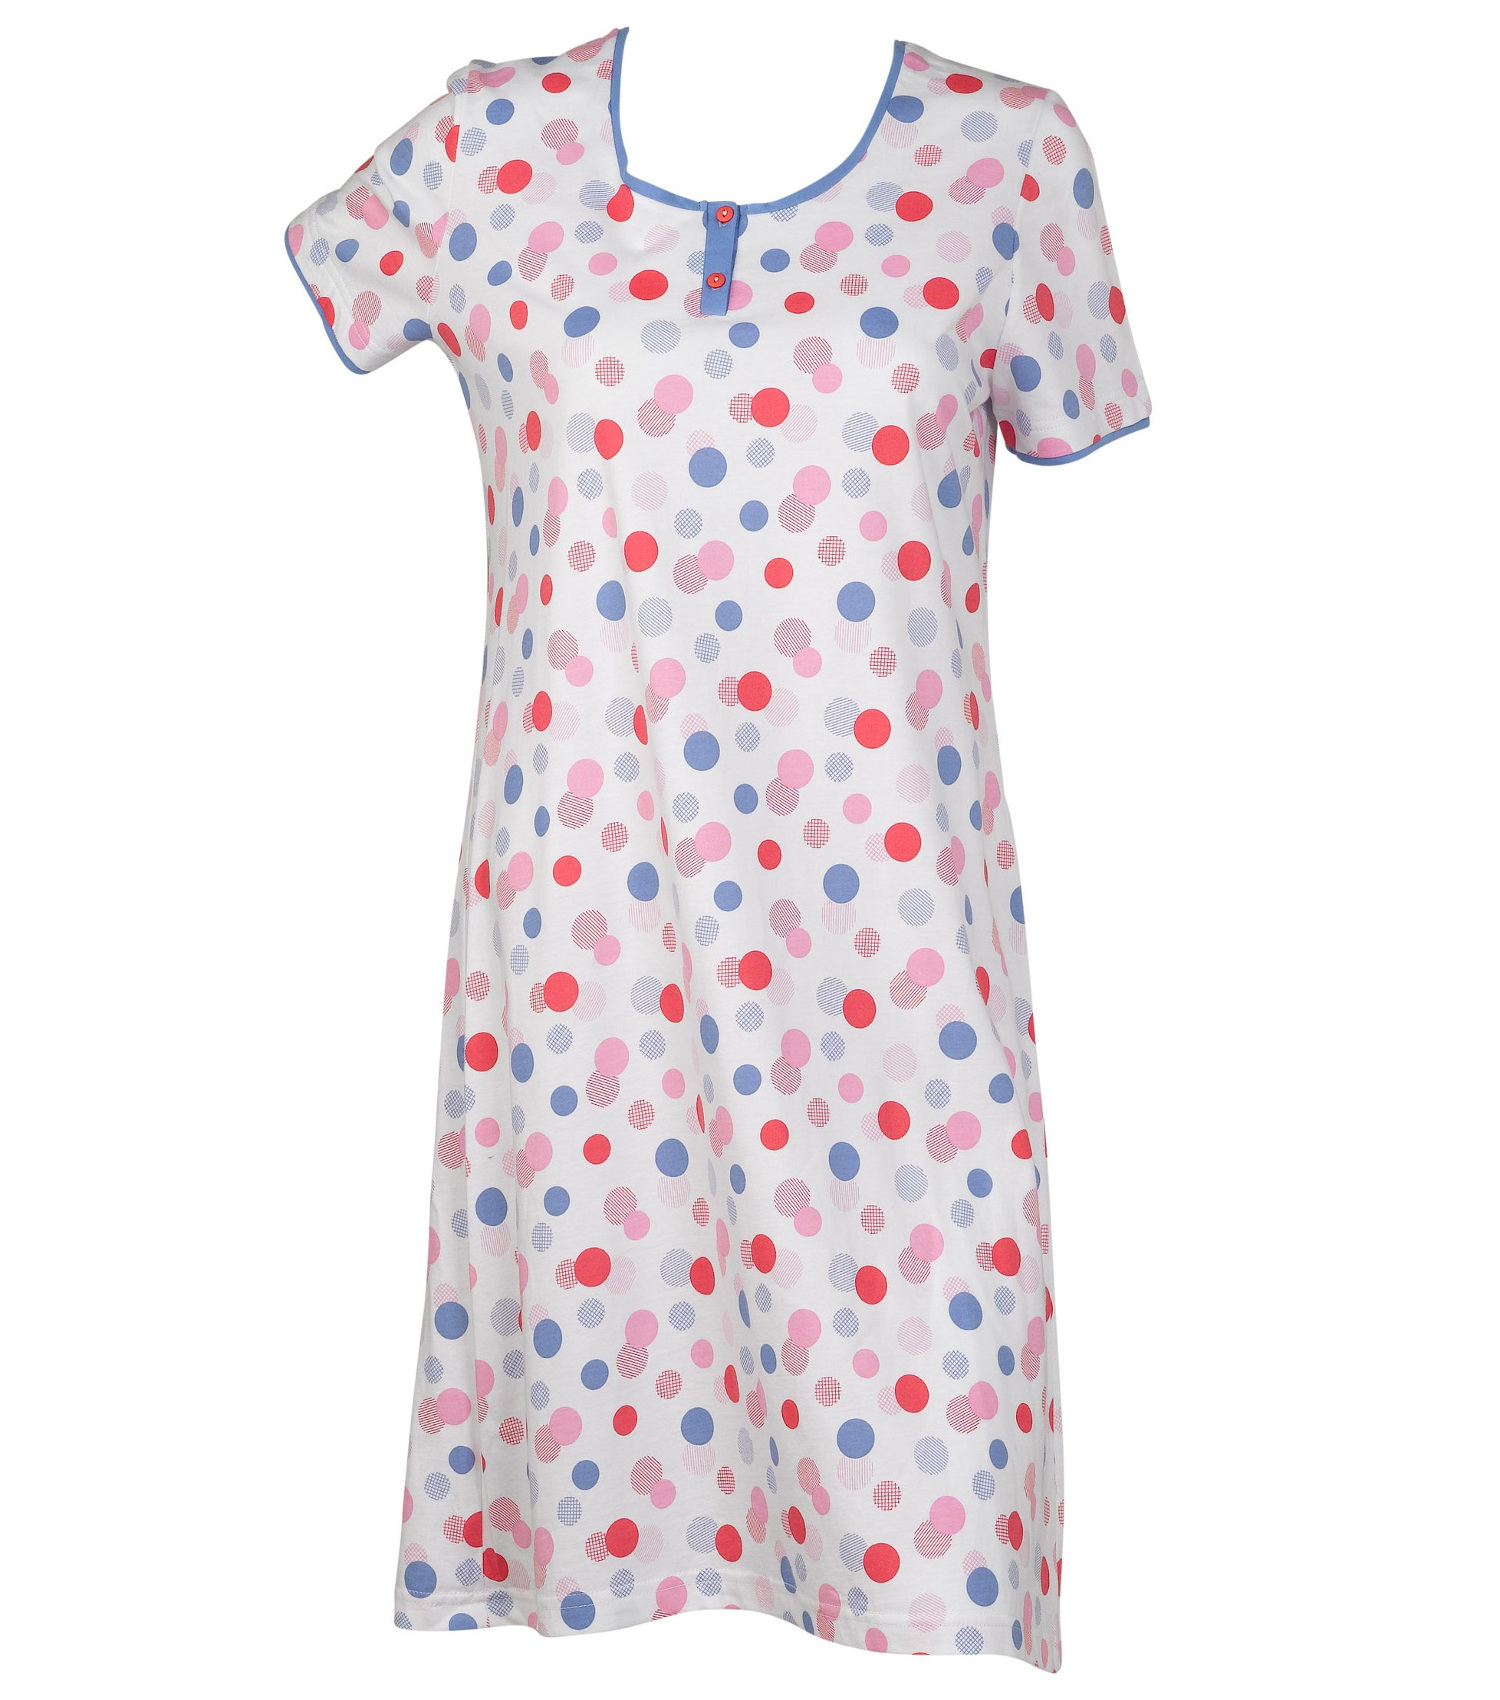 Details about Ladies 100% Cotton Polka Dot Nightdress Short Sleeved Round  Neck Spots Nighty 8fa869fc6